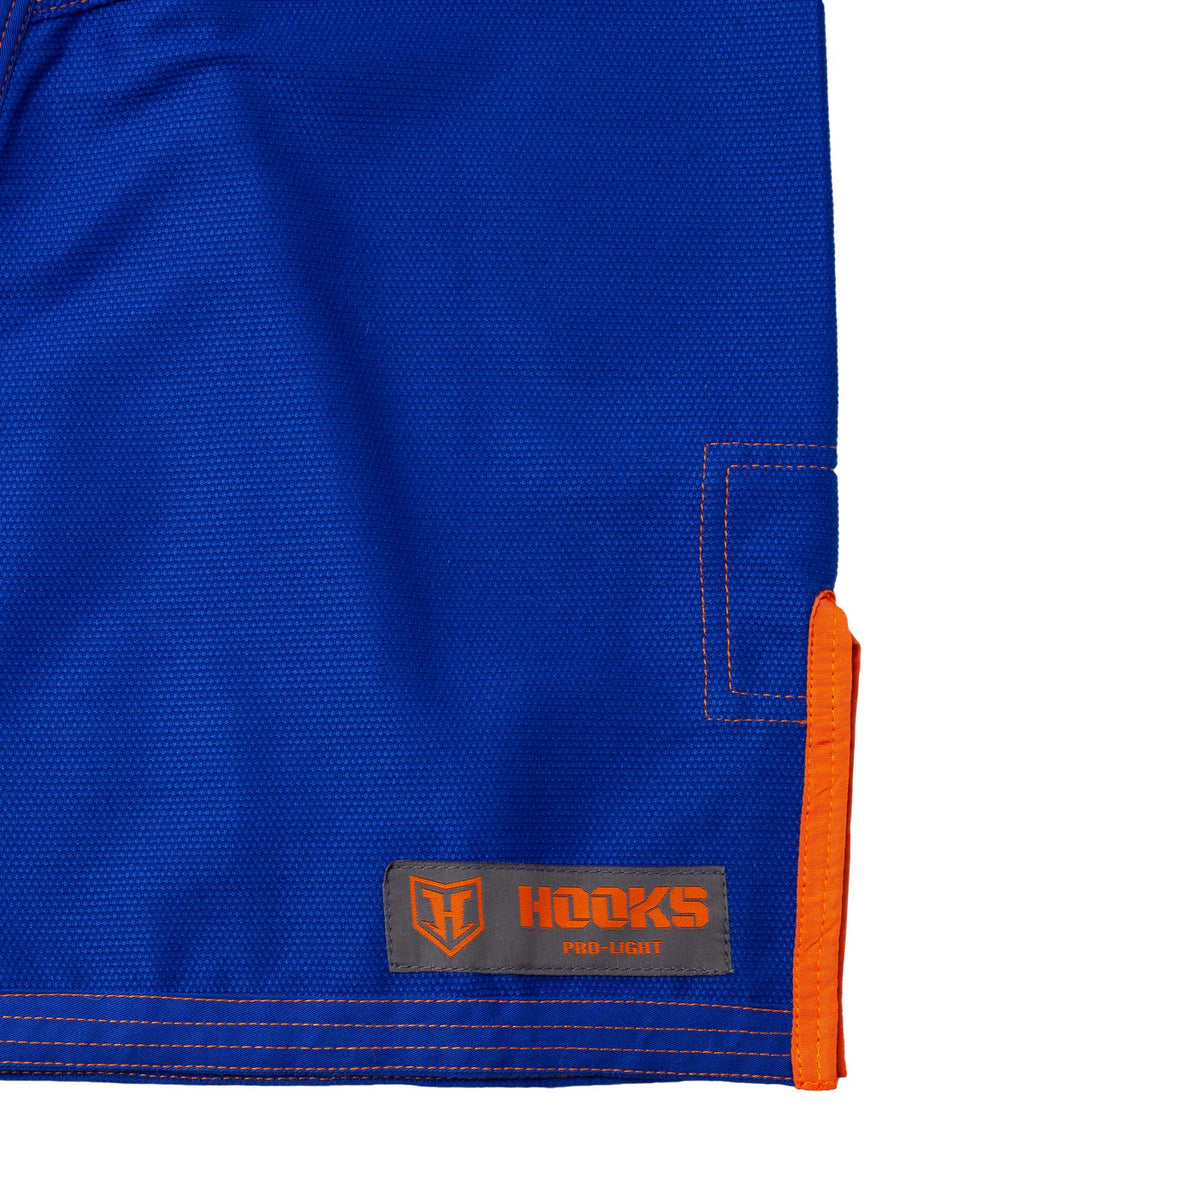 Hooks Pro Light Jiu Jitsu Gi -  Limited Edition Blue w Grey/Orange